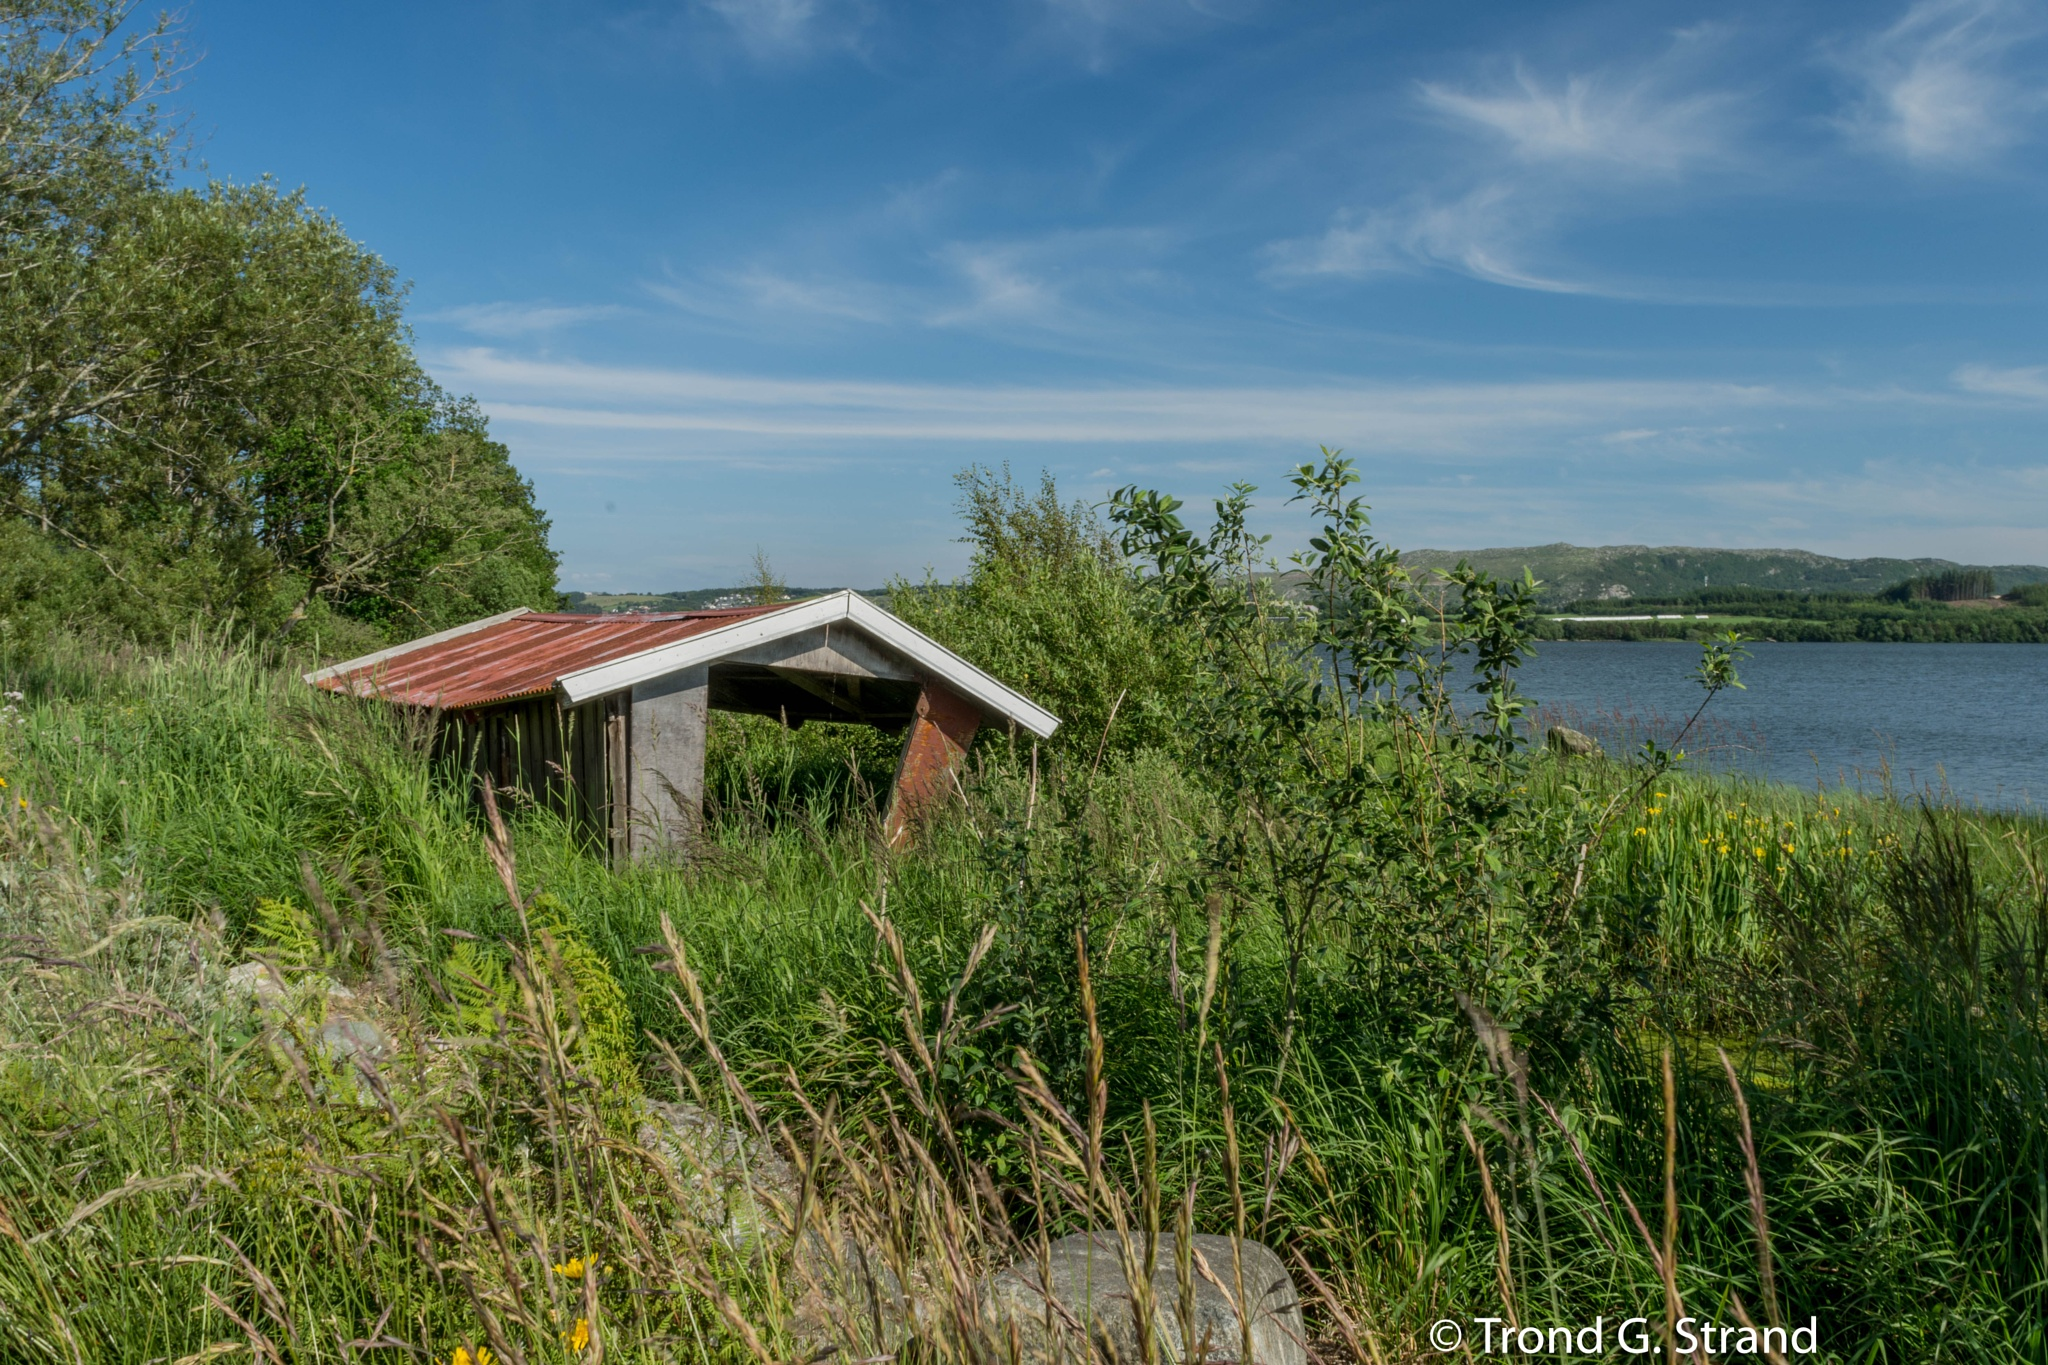 The old boat house by Trond Strand